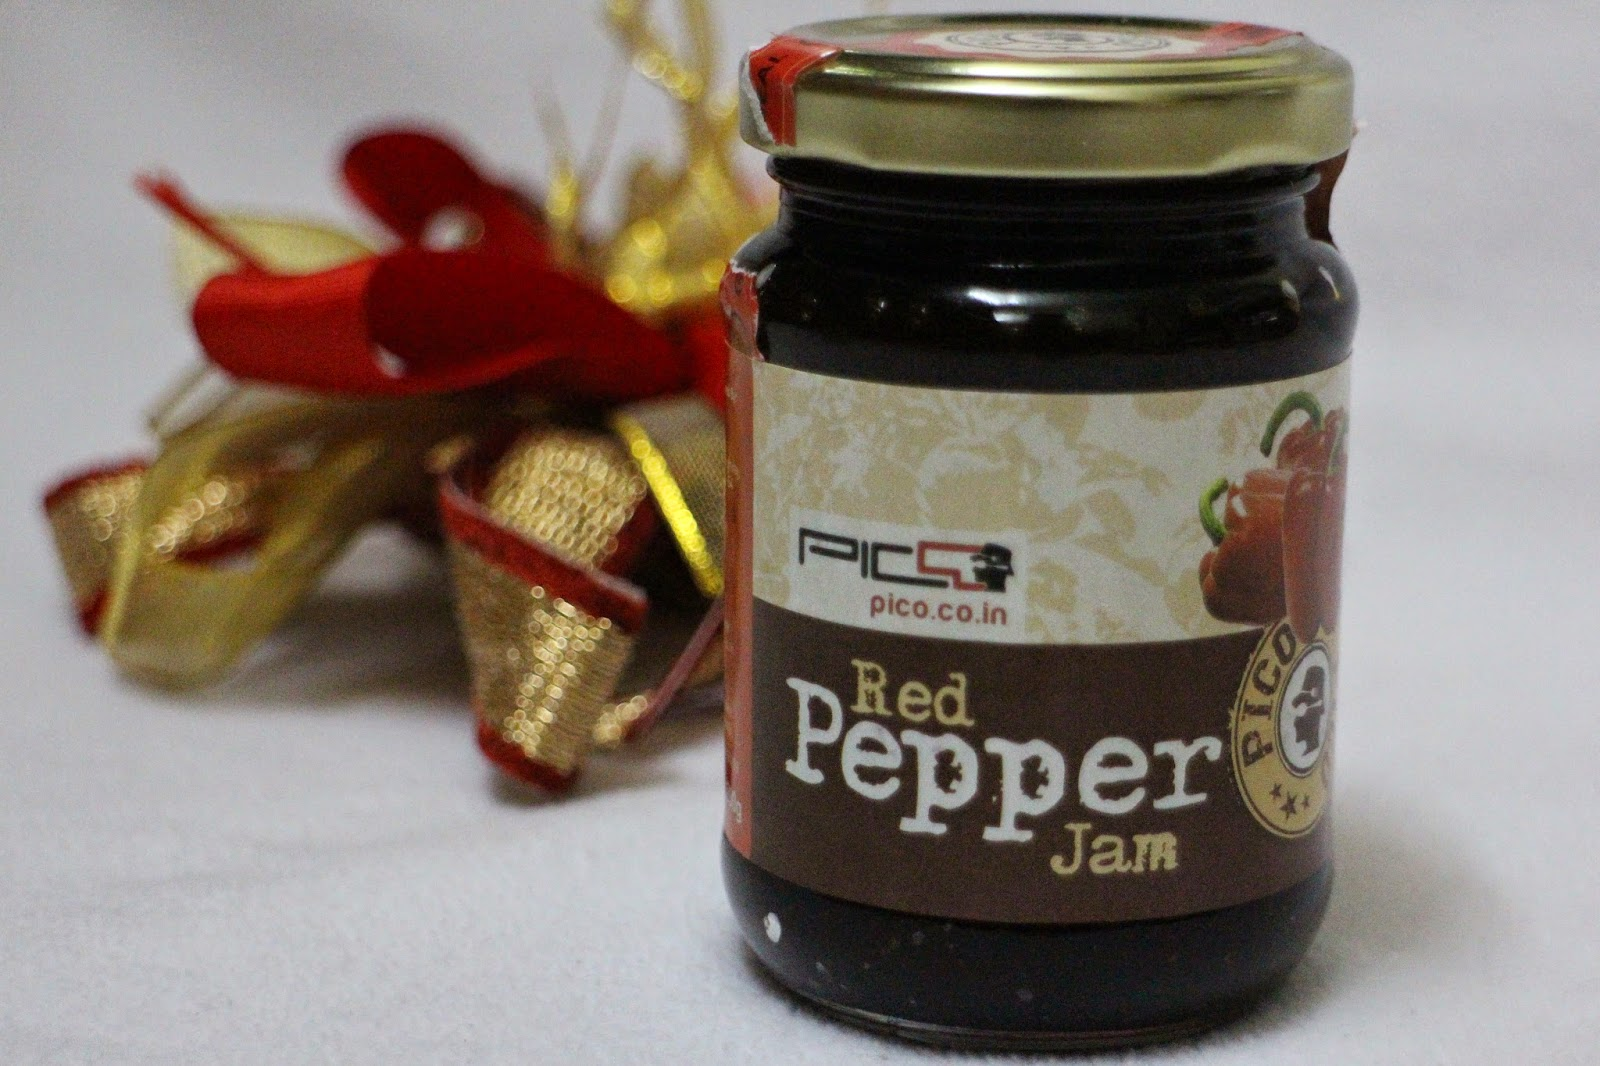 Godrej Nature's Basket, Pico, Jam, Red Pepper Jam, Food